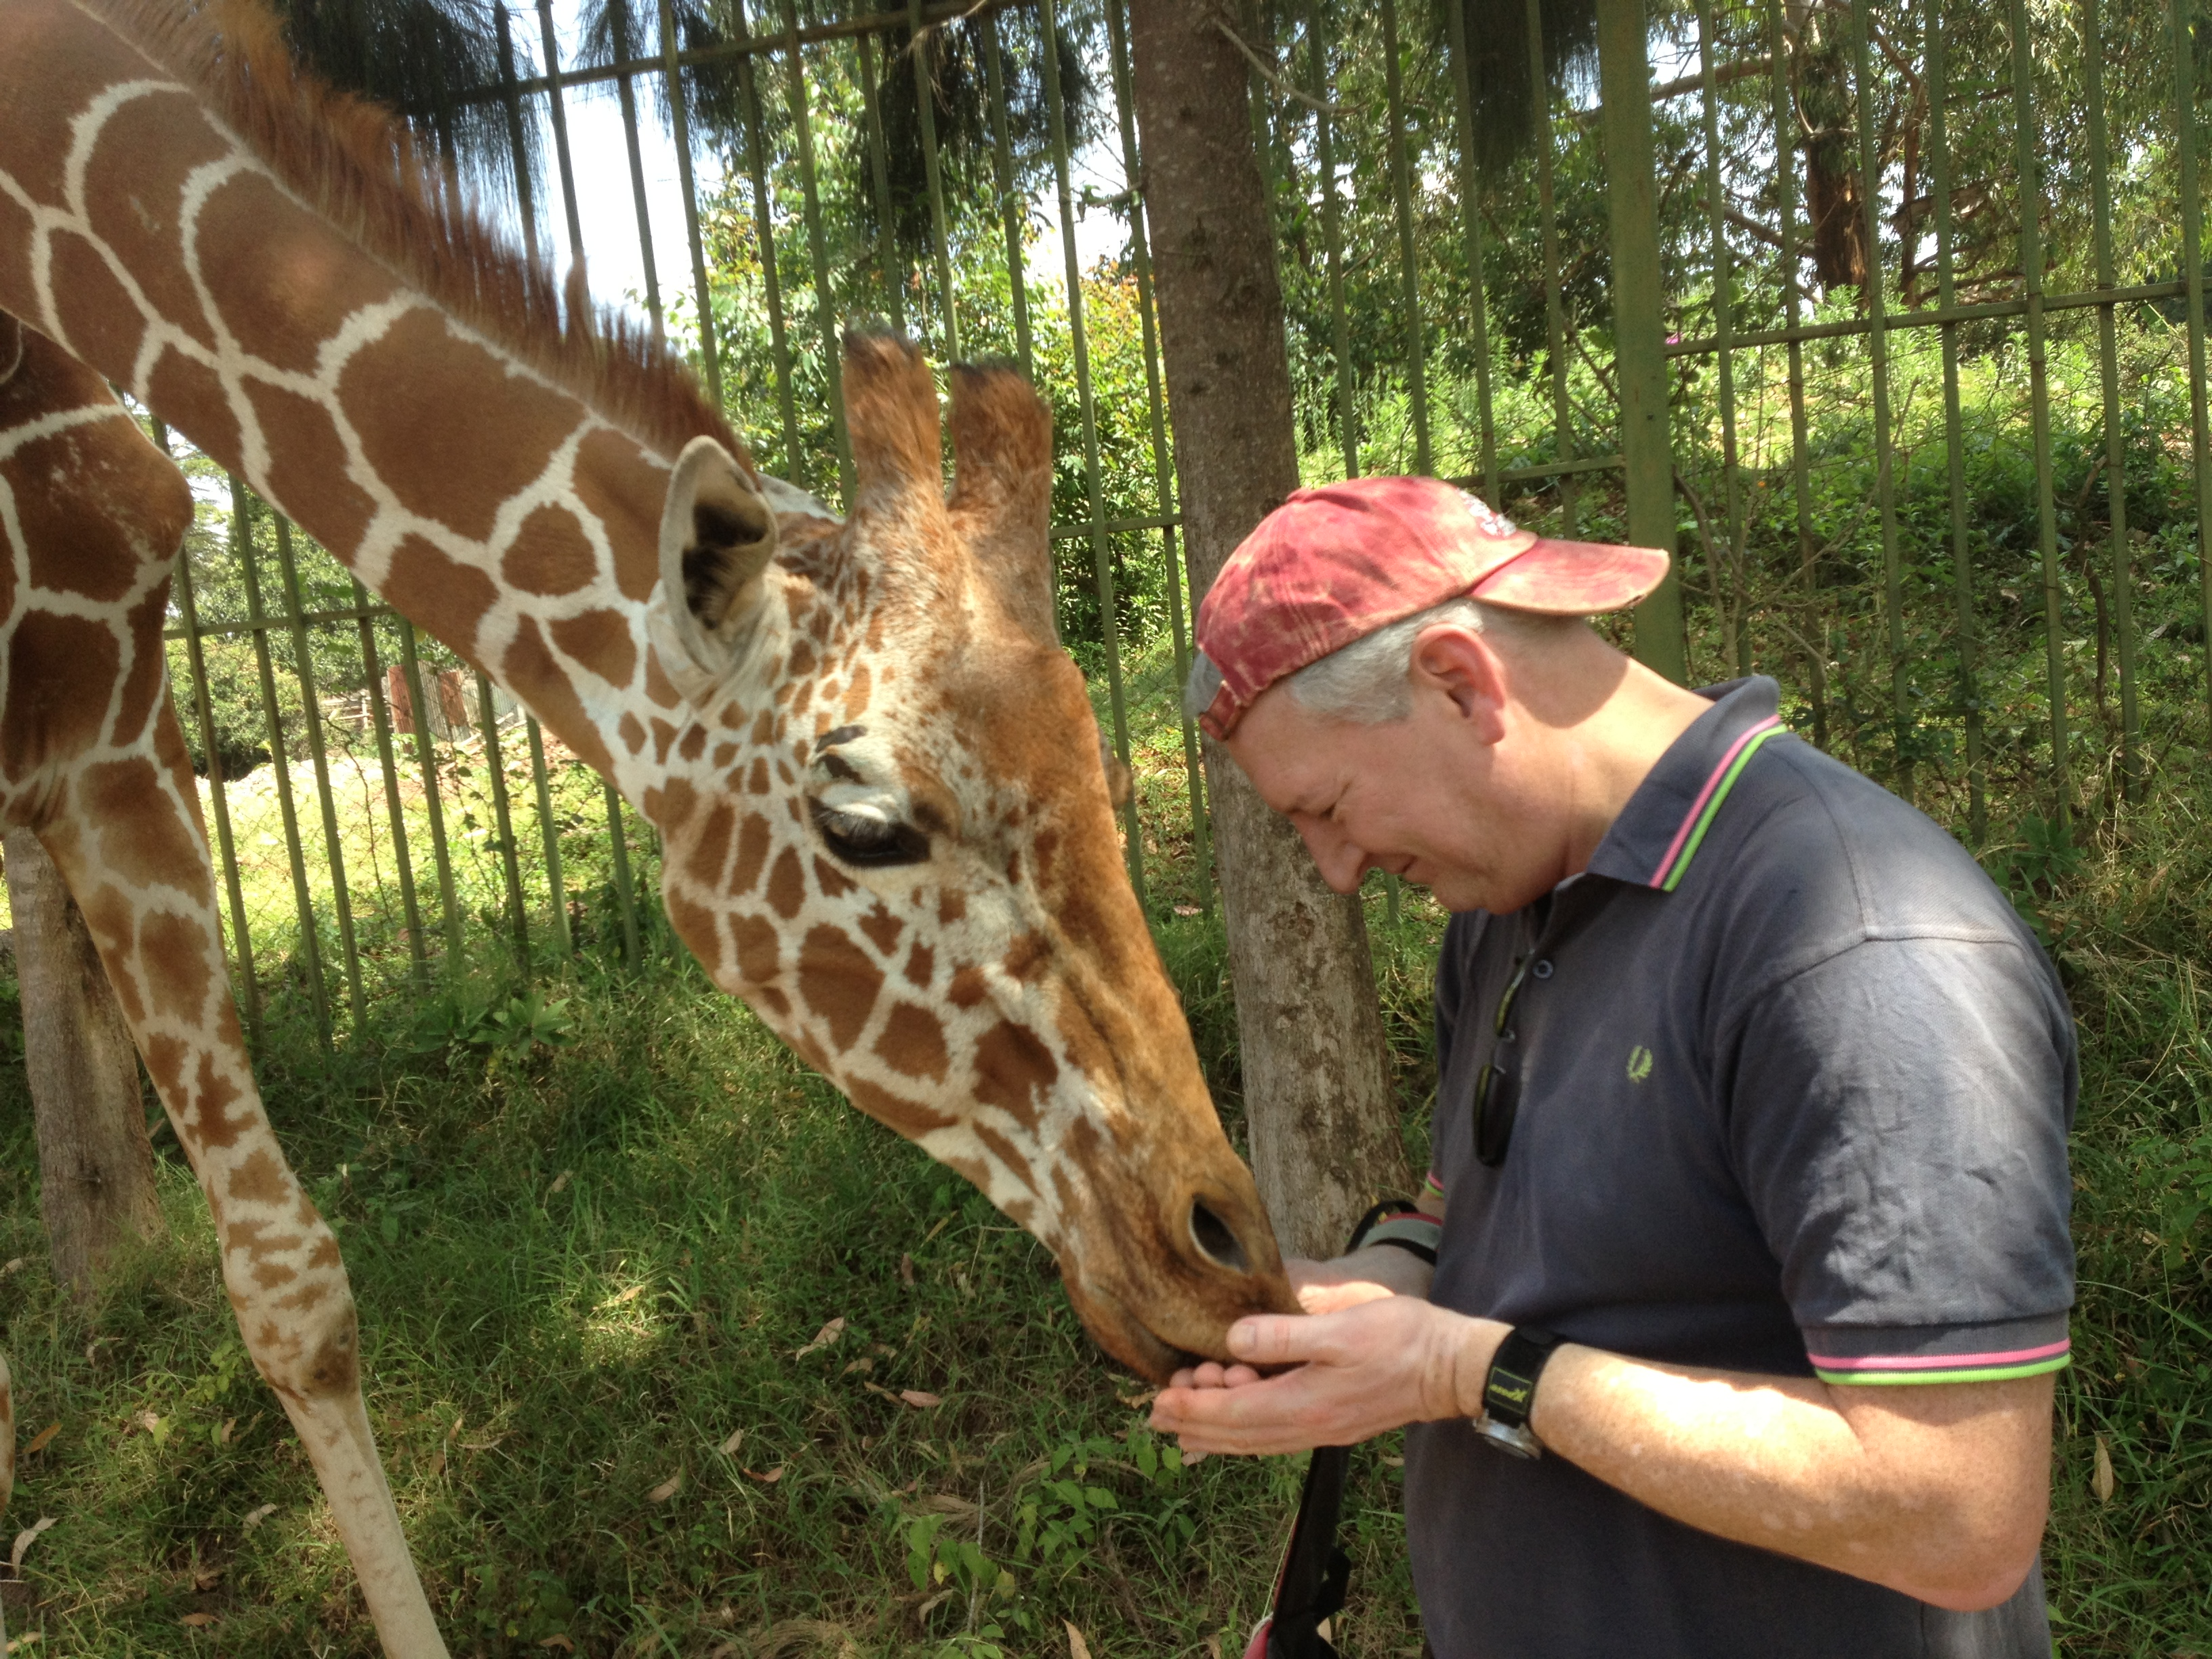 Cintra CEO Carsten Staehr feeding a giraffe during a break in the cycle ride